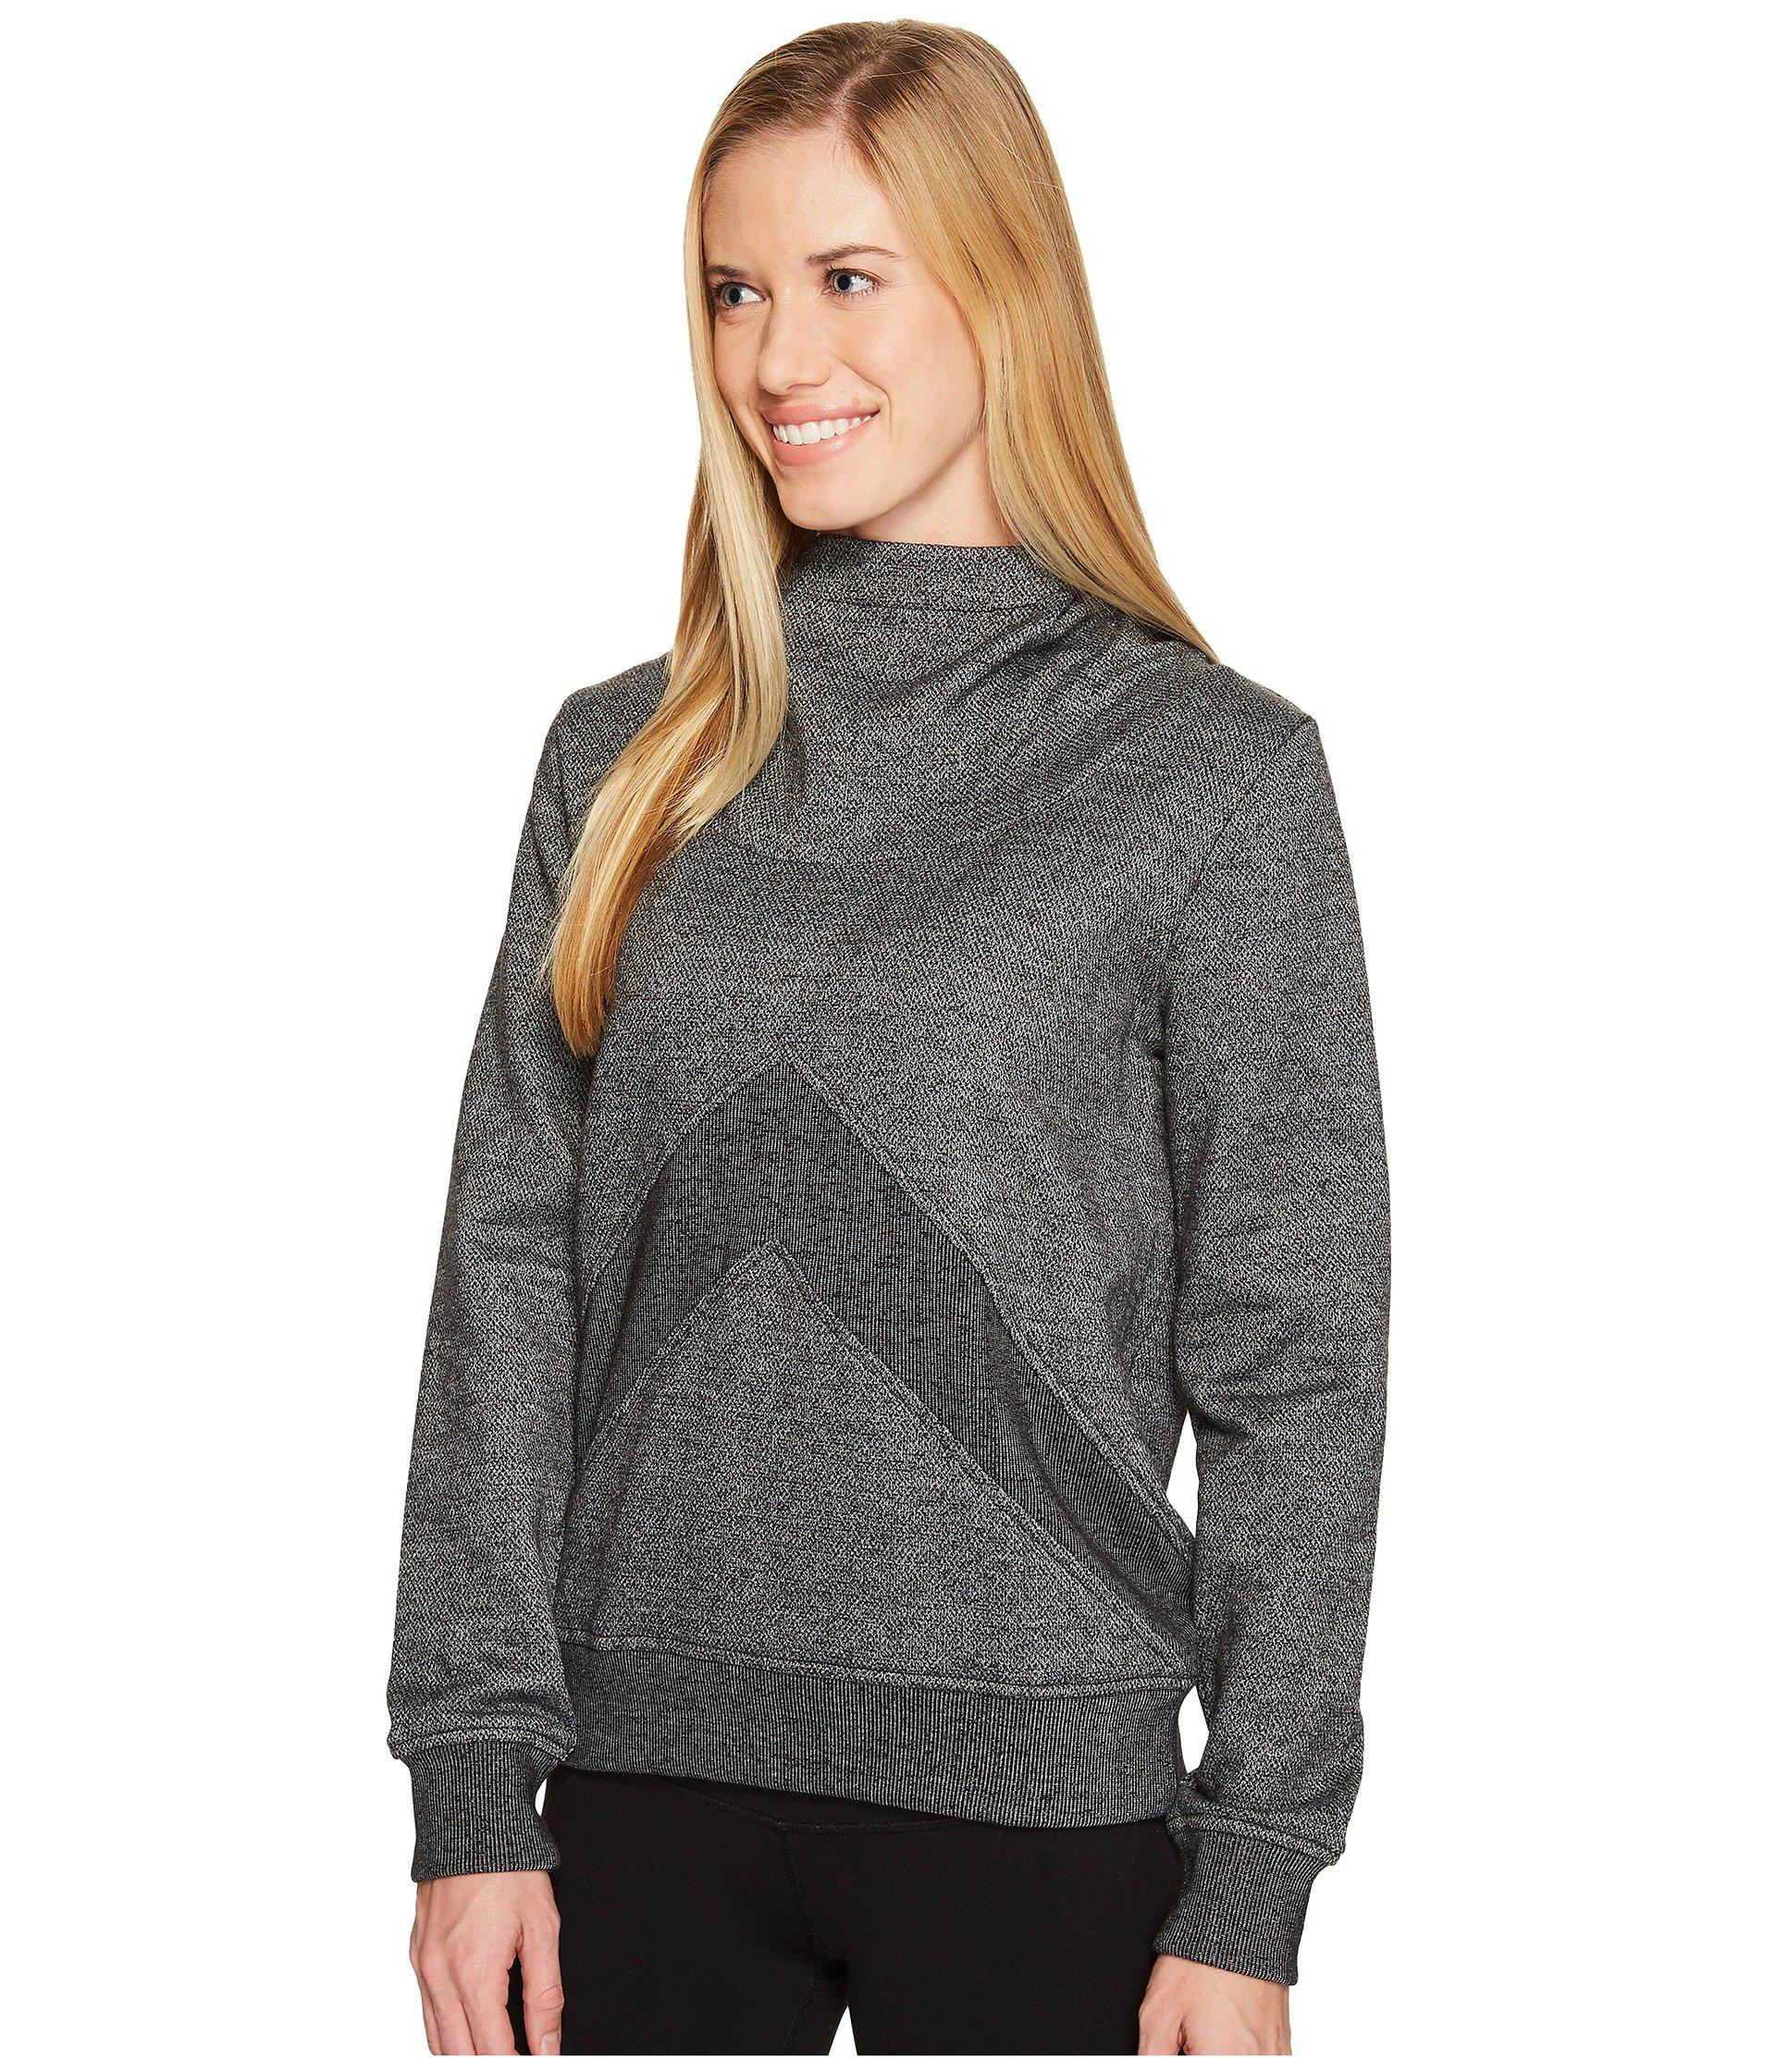 812253e3979db Lyst - Lolë Frances Top in Gray - Save 51%